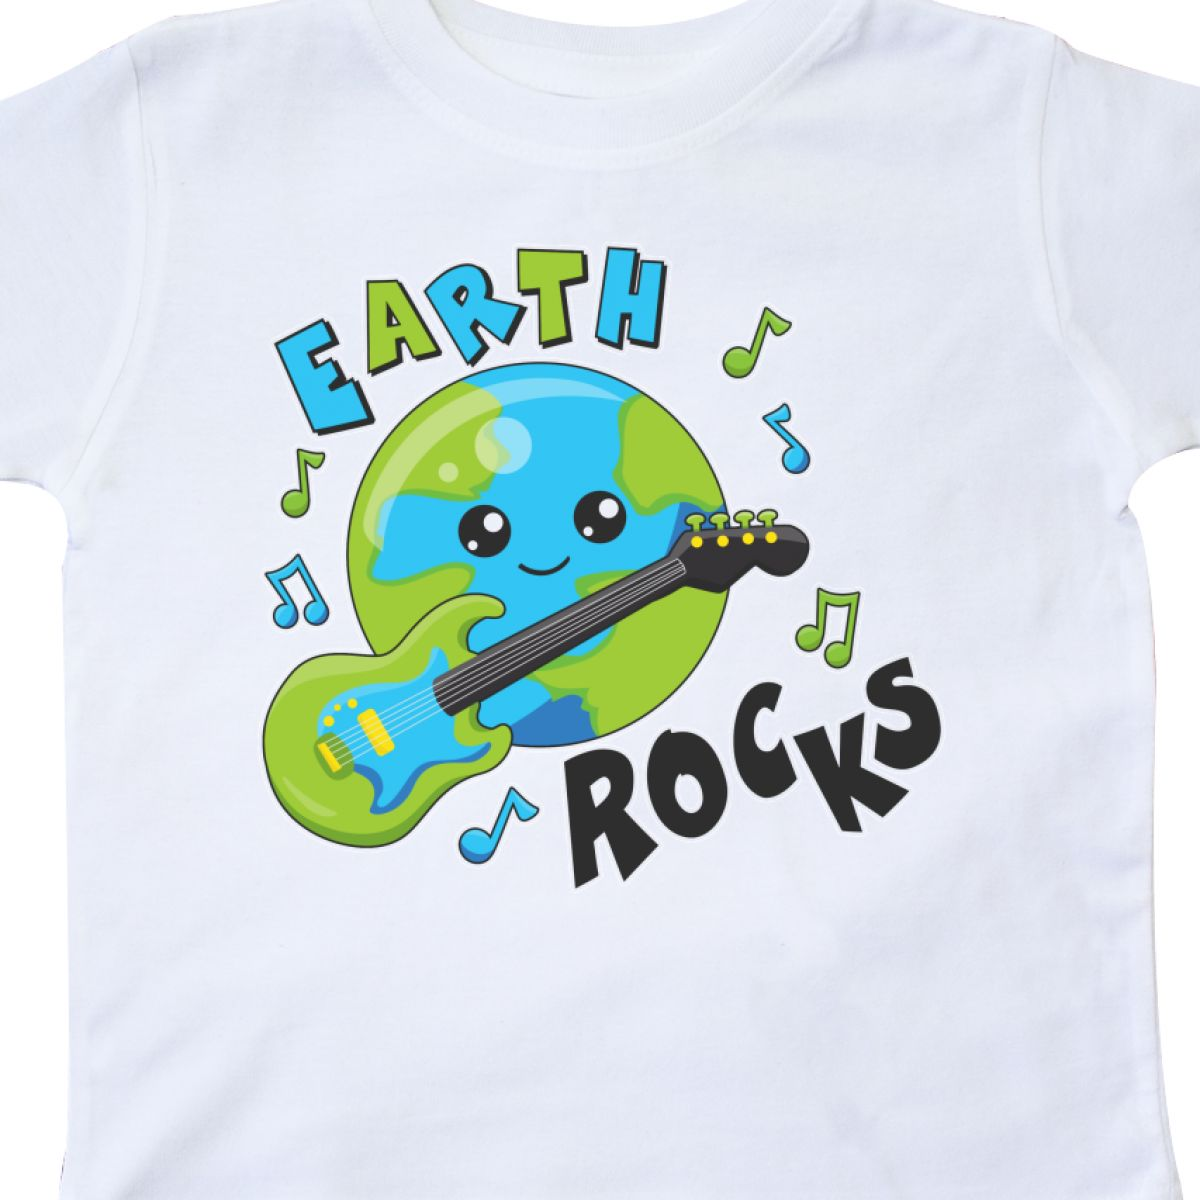 Inktastic 2nd Grade Rocks With Sunglasses And Pencil Youth T-Shirt School Back